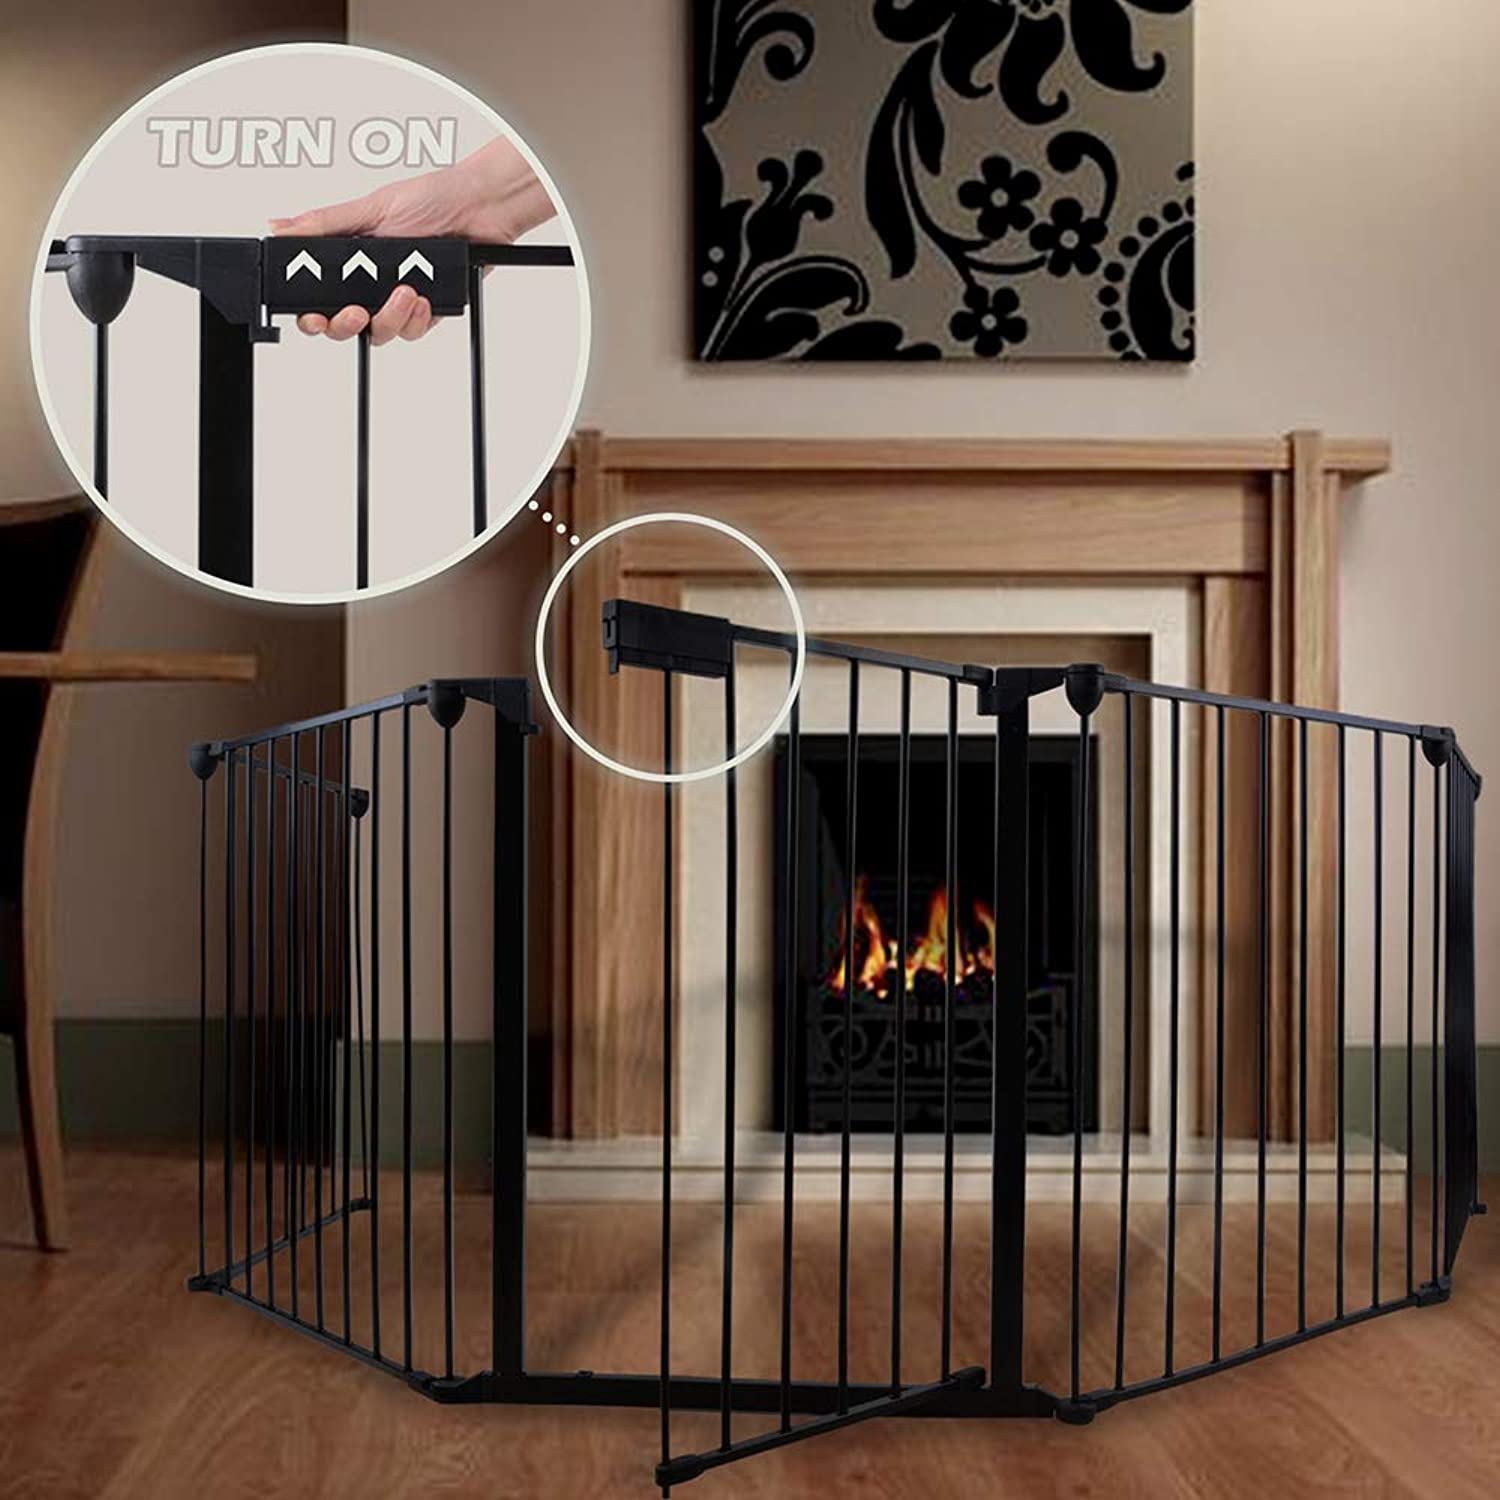 "GOGODUCKS Fireplace Fence Baby Safety Fence Hearth Gate MultiFunctional Metal Fence with Door Includes 5 Panels 30"" High Black"